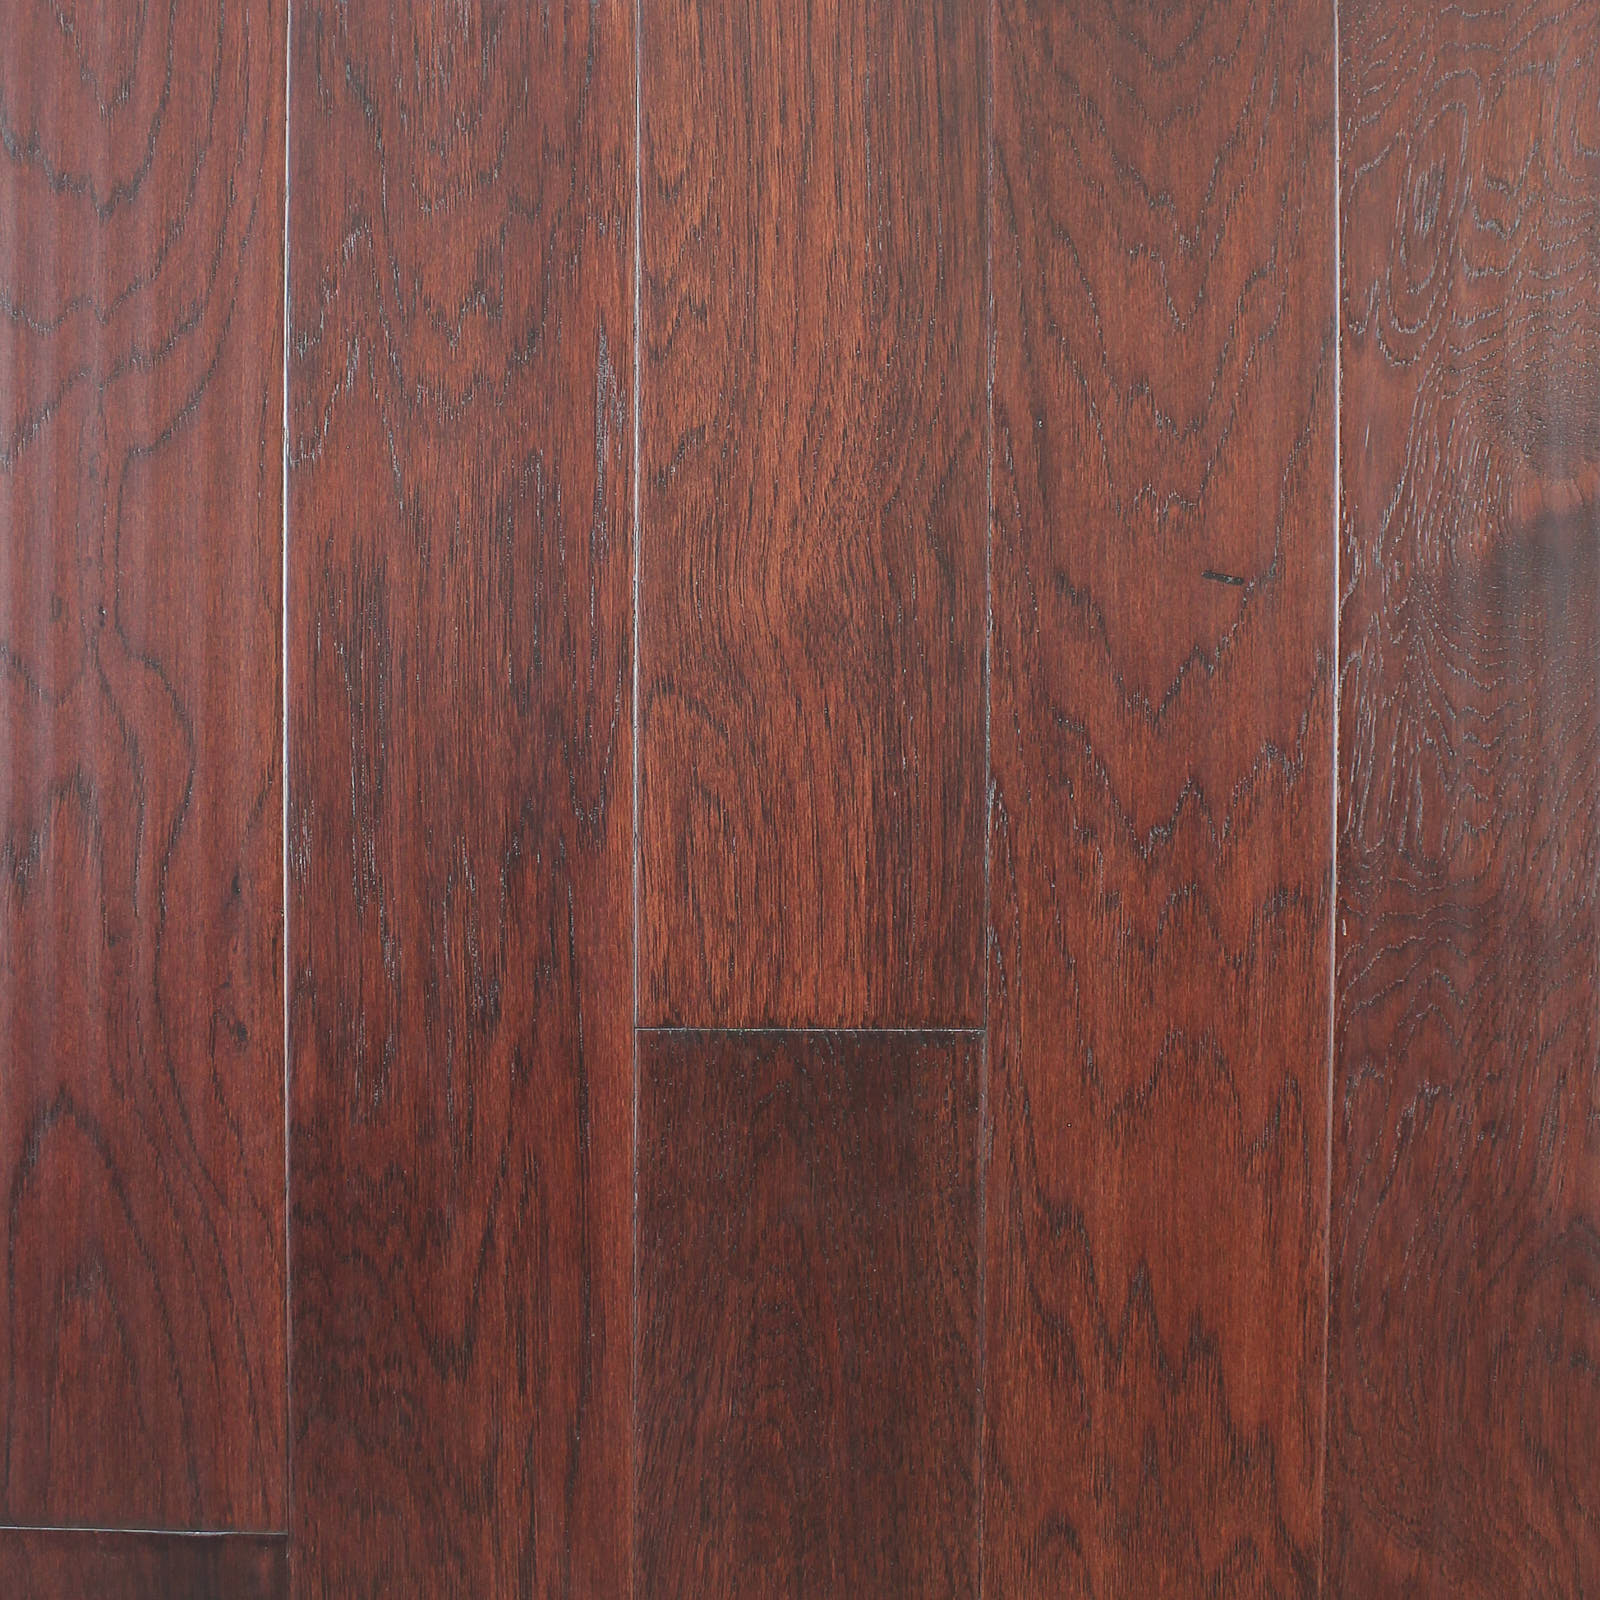 Briscoe Plank Trivento Engineered Hardwood Flooring